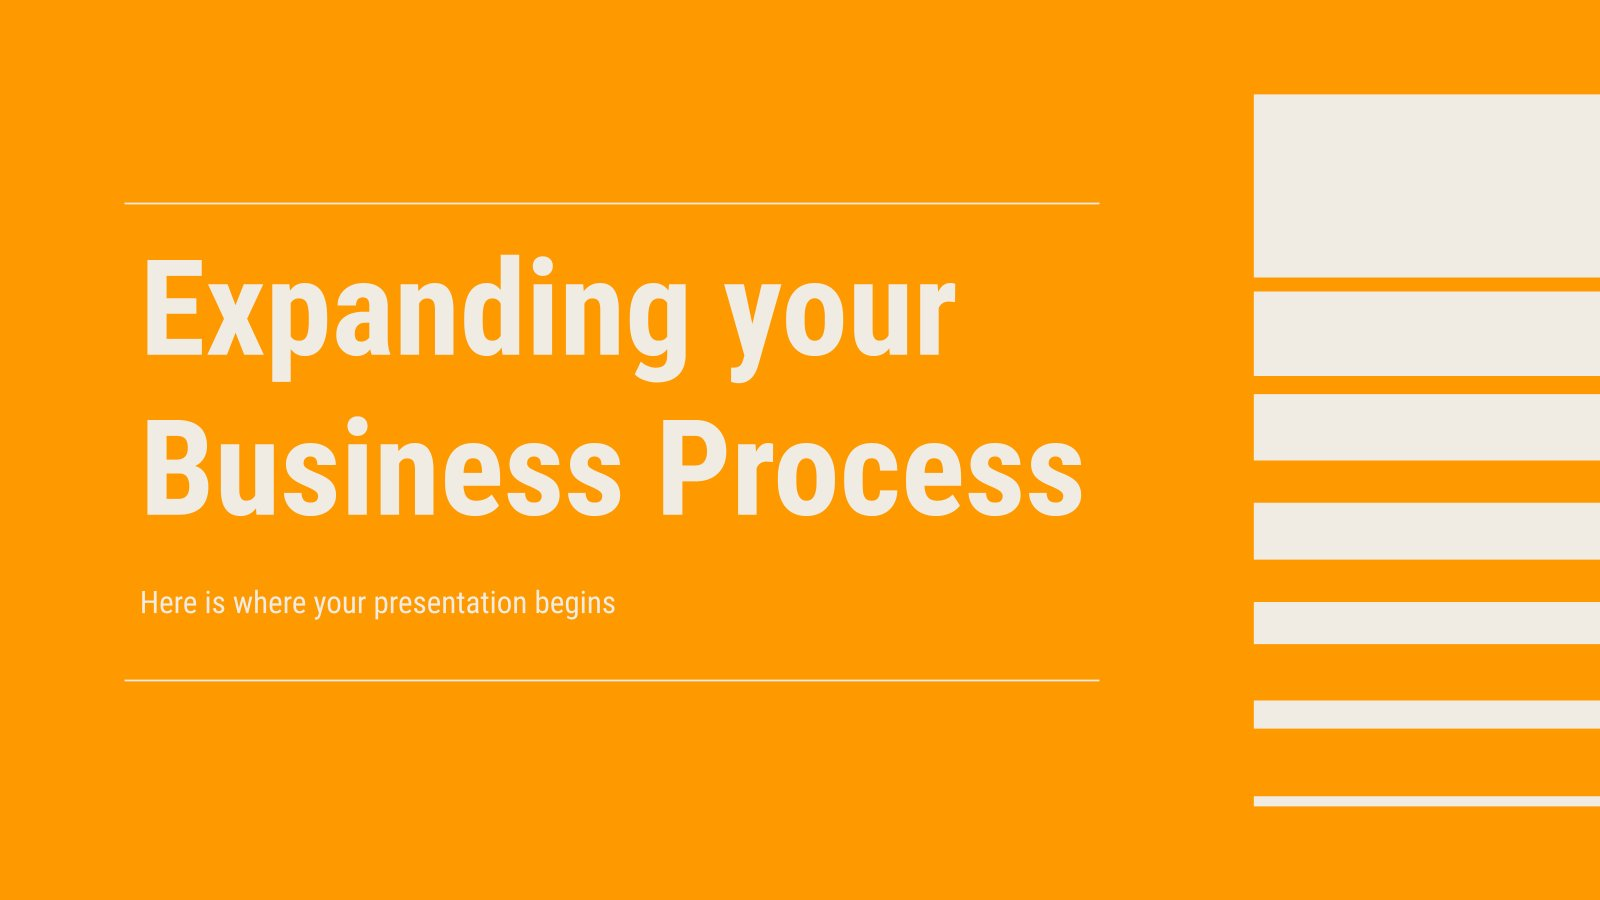 Expanding your Business Process presentation template